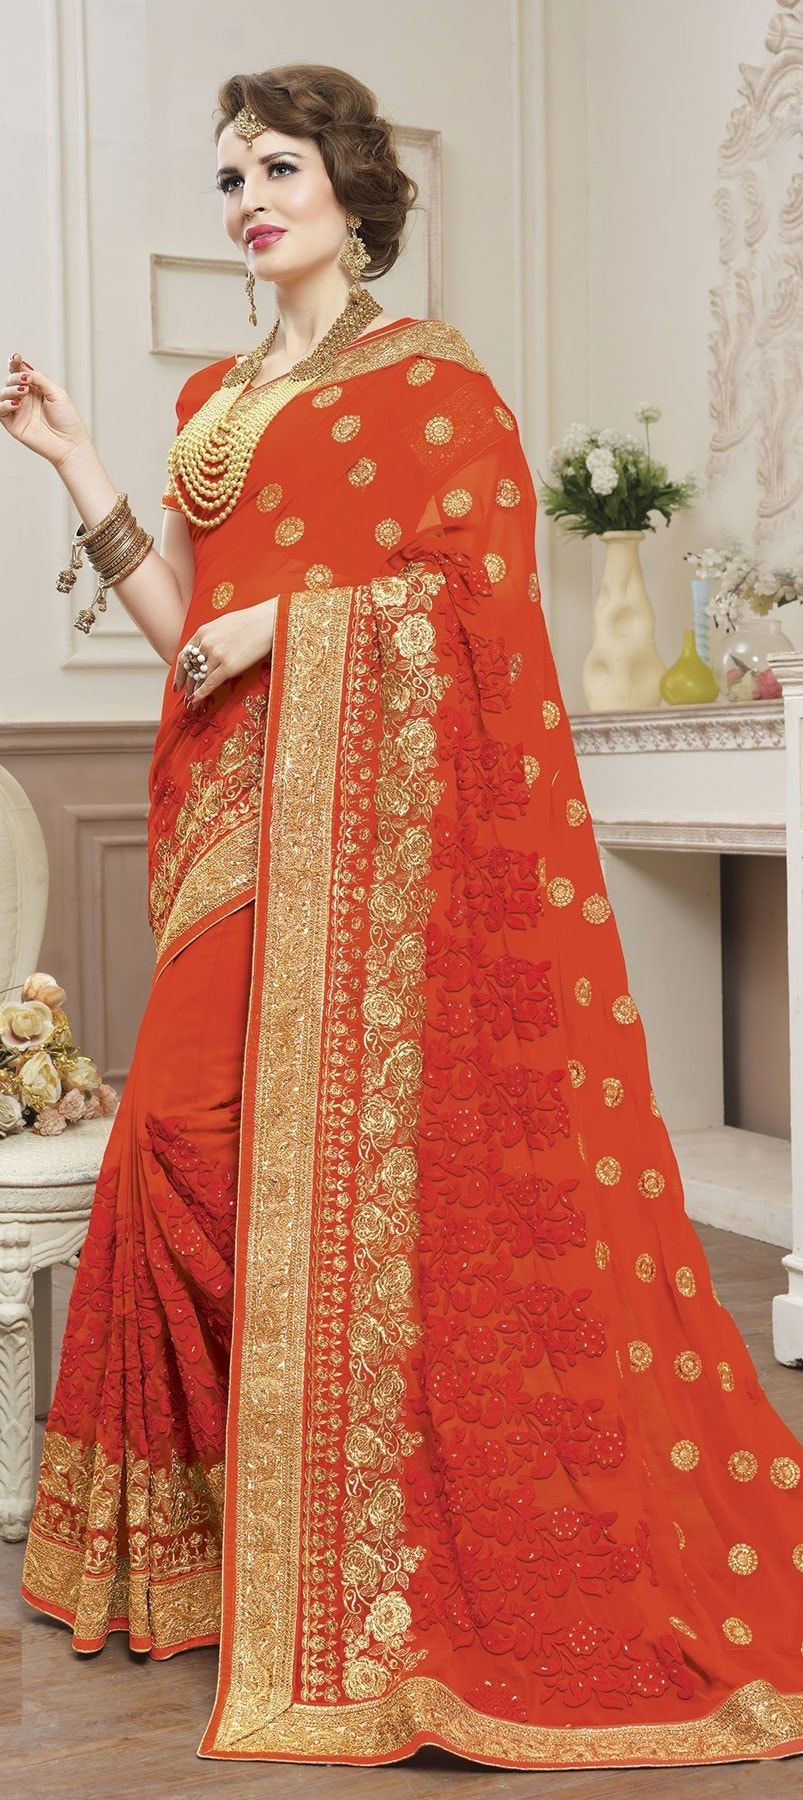 713040ca3c 766330: Orange color family Embroidered Sarees, Party Wear Sarees ...